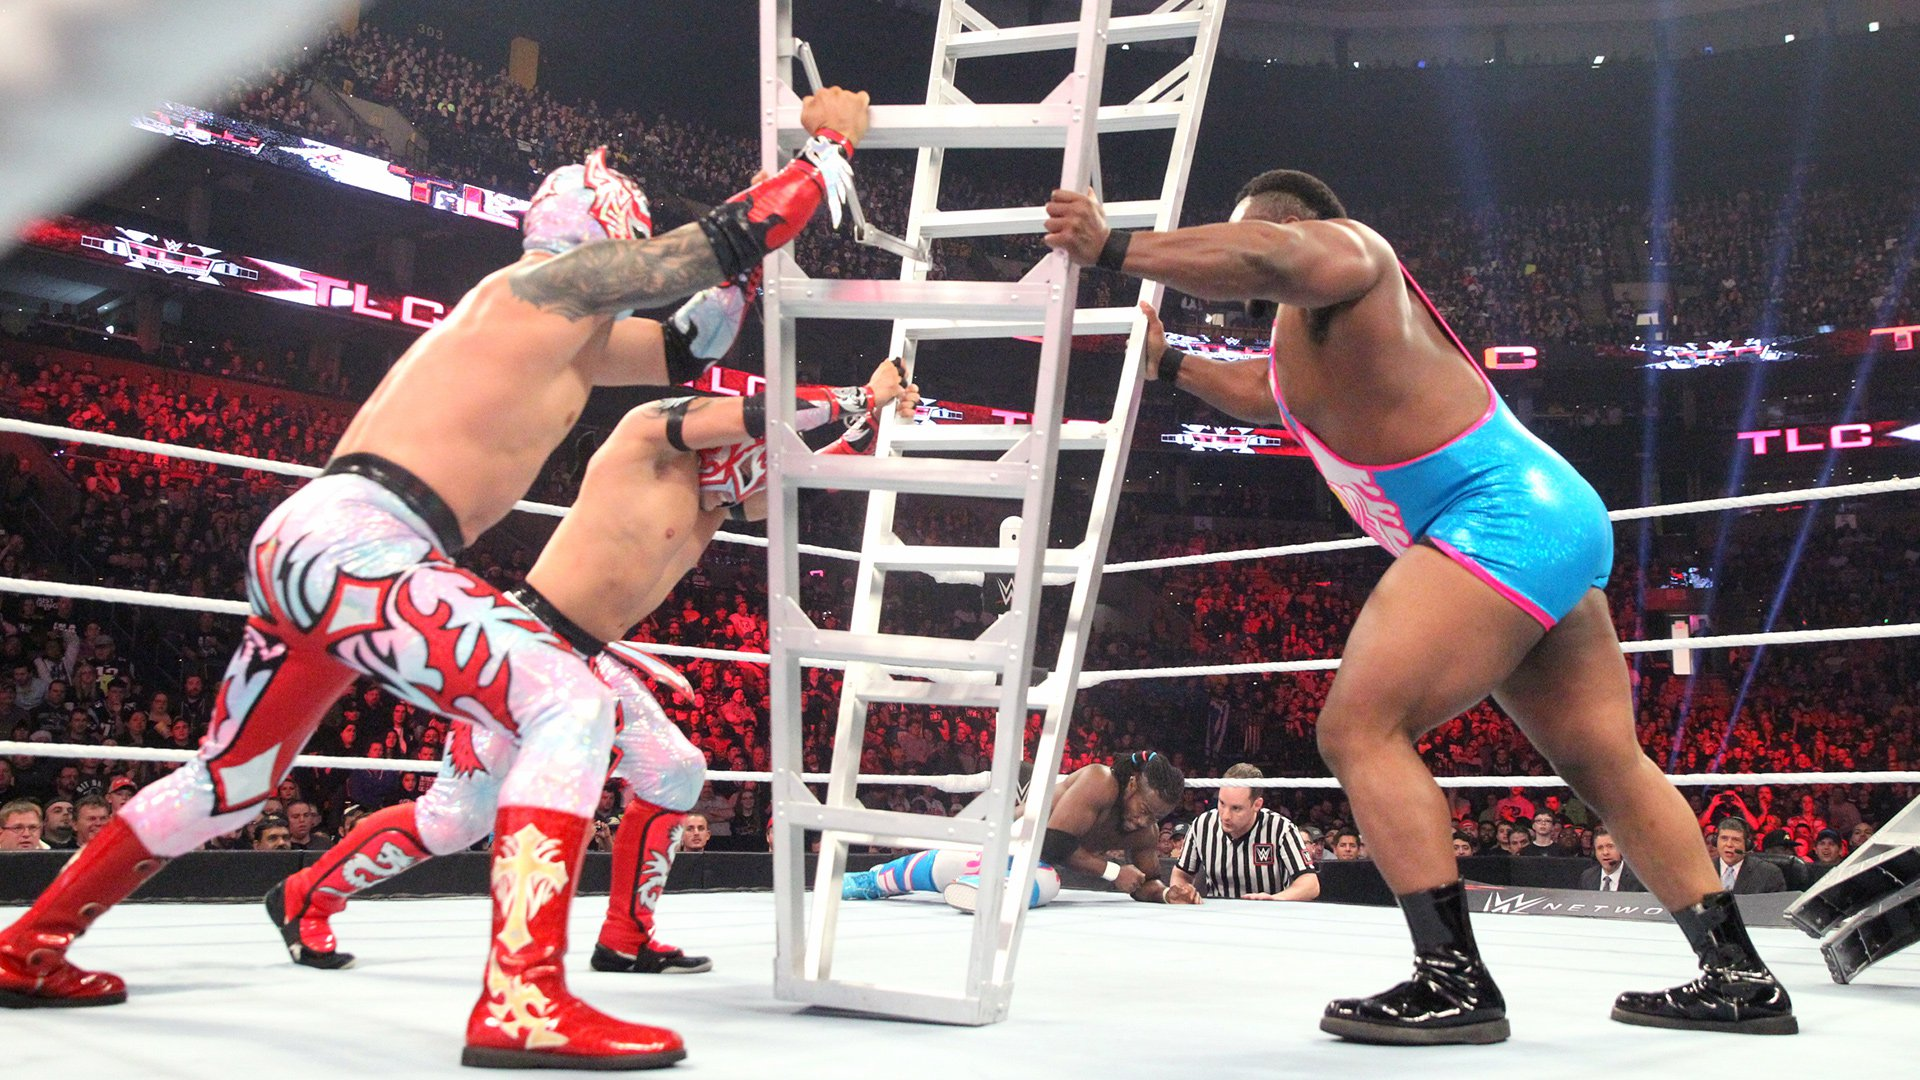 Big E showcases his unrivaled strength against Sin Cara & Kalisto.